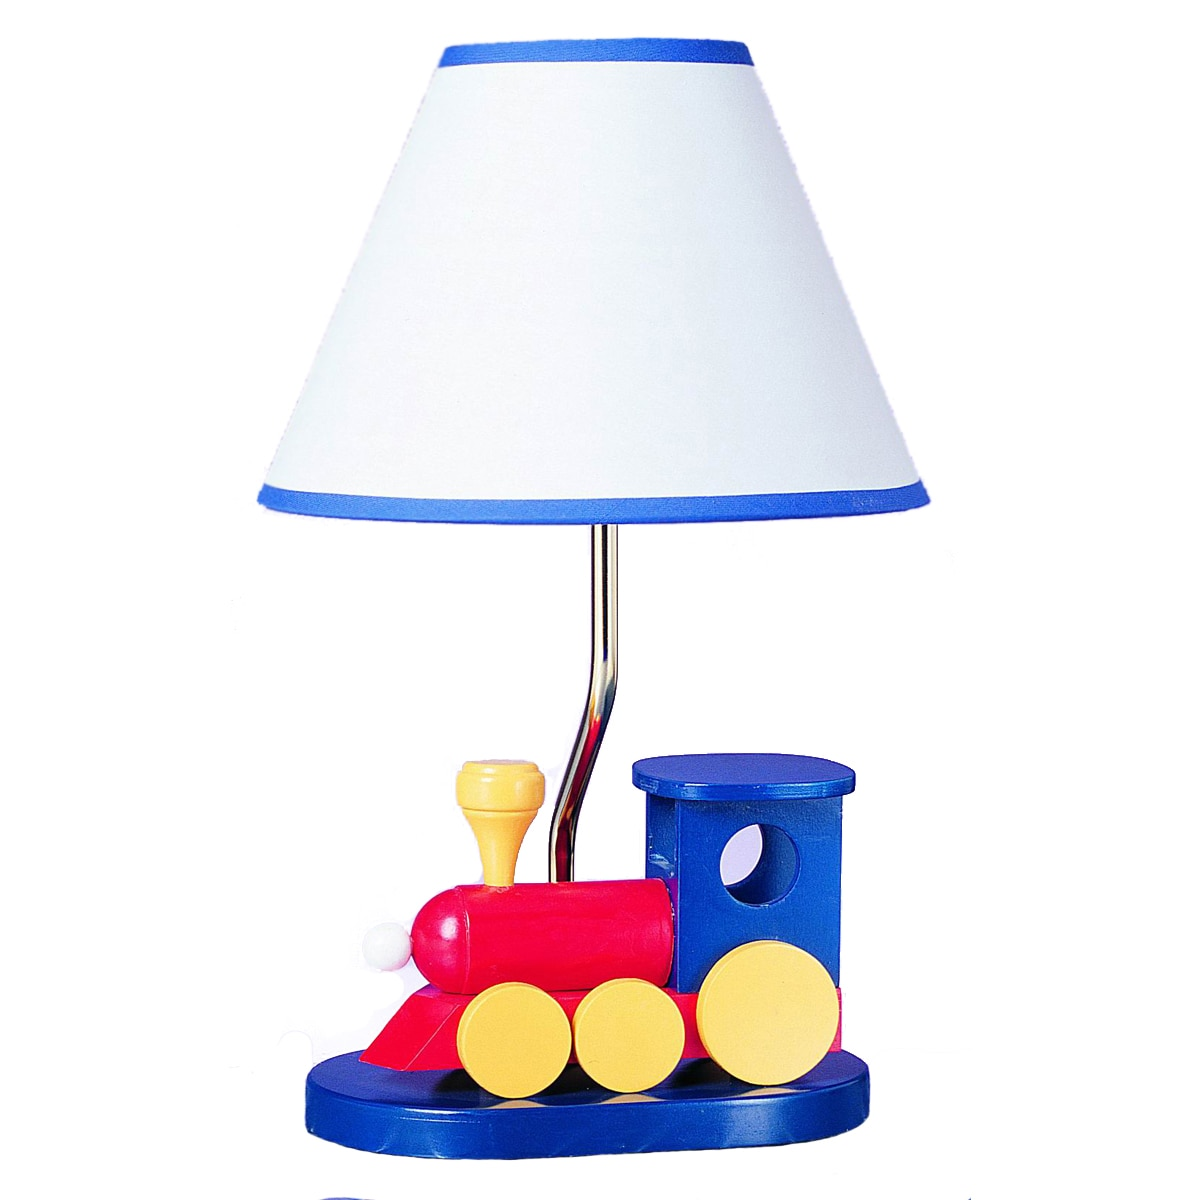 Cal lighting choo choo train youth table lamp free shipping today cal lighting choo choo train youth table lamp free shipping today overstock 14777046 arubaitofo Image collections